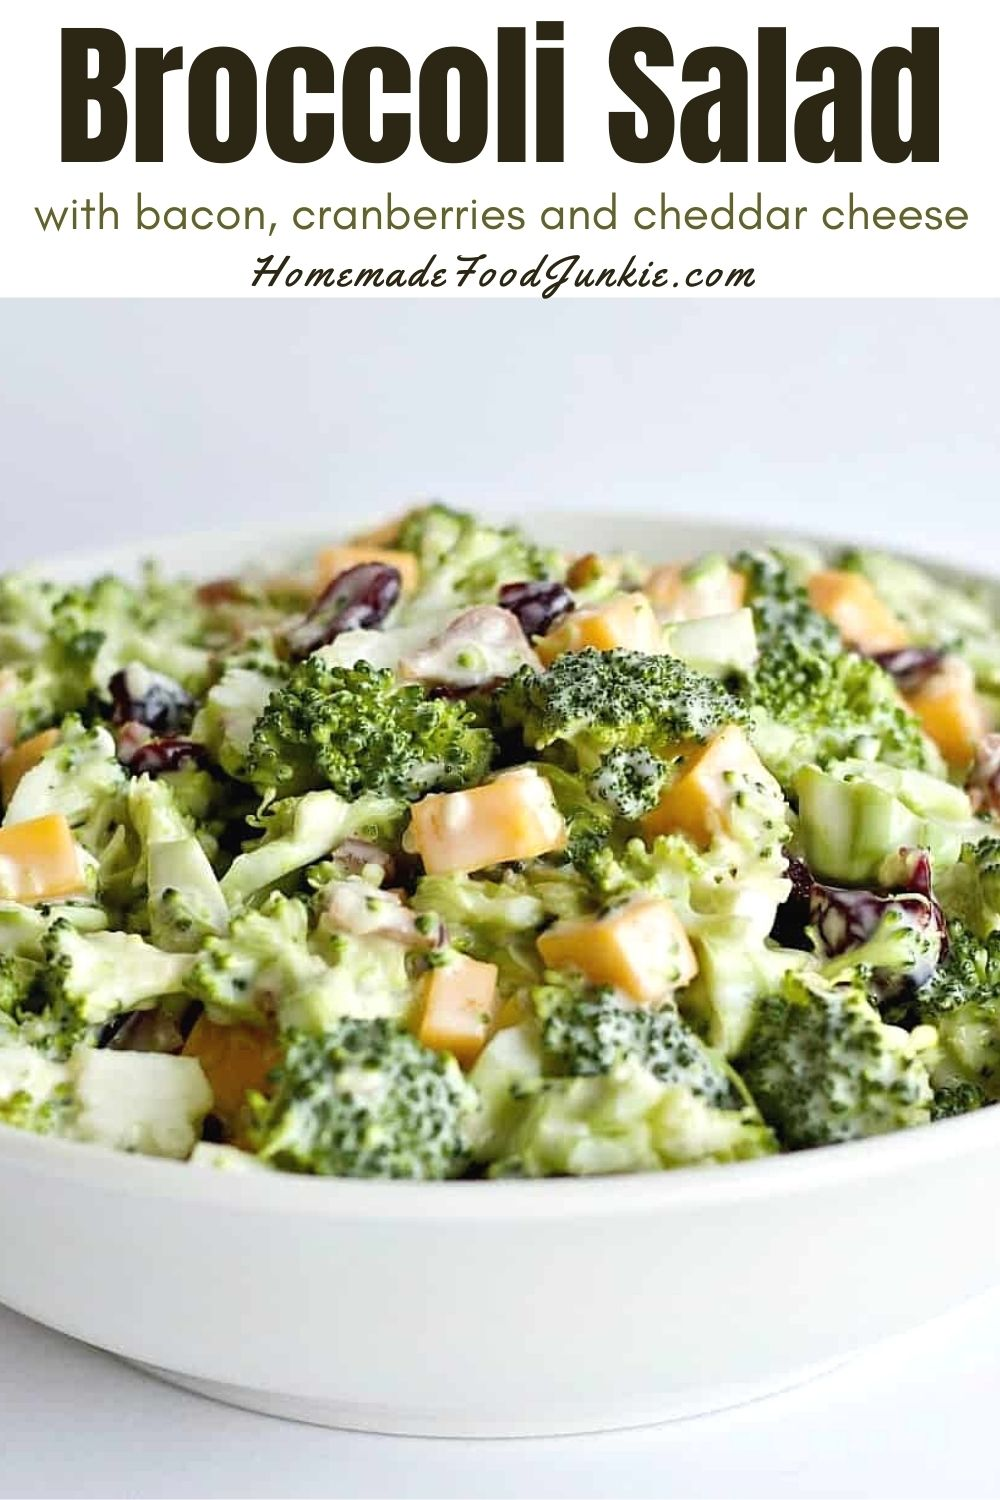 Broccoli salad with bacon, cranberries and cheddar cheese-pin image